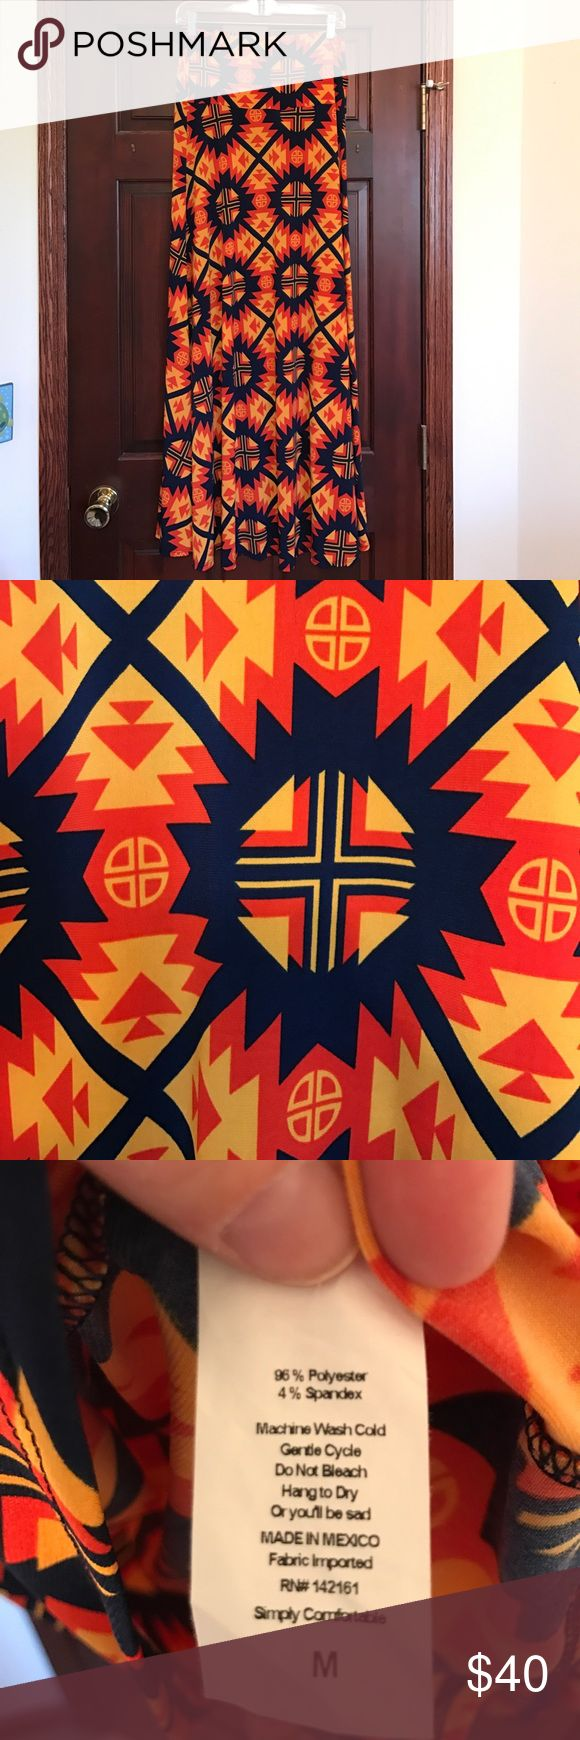 LuLaRoe Maxi skirt size Medium Awesome LuLaRoe maxi skirt (can also be worn as a strapless dress) size Medium.  Perfect condition worn just once.  Super fun southwest/Aztec design.  Navy blue, orange and yellow. LuLaRoe Skirts Maxi